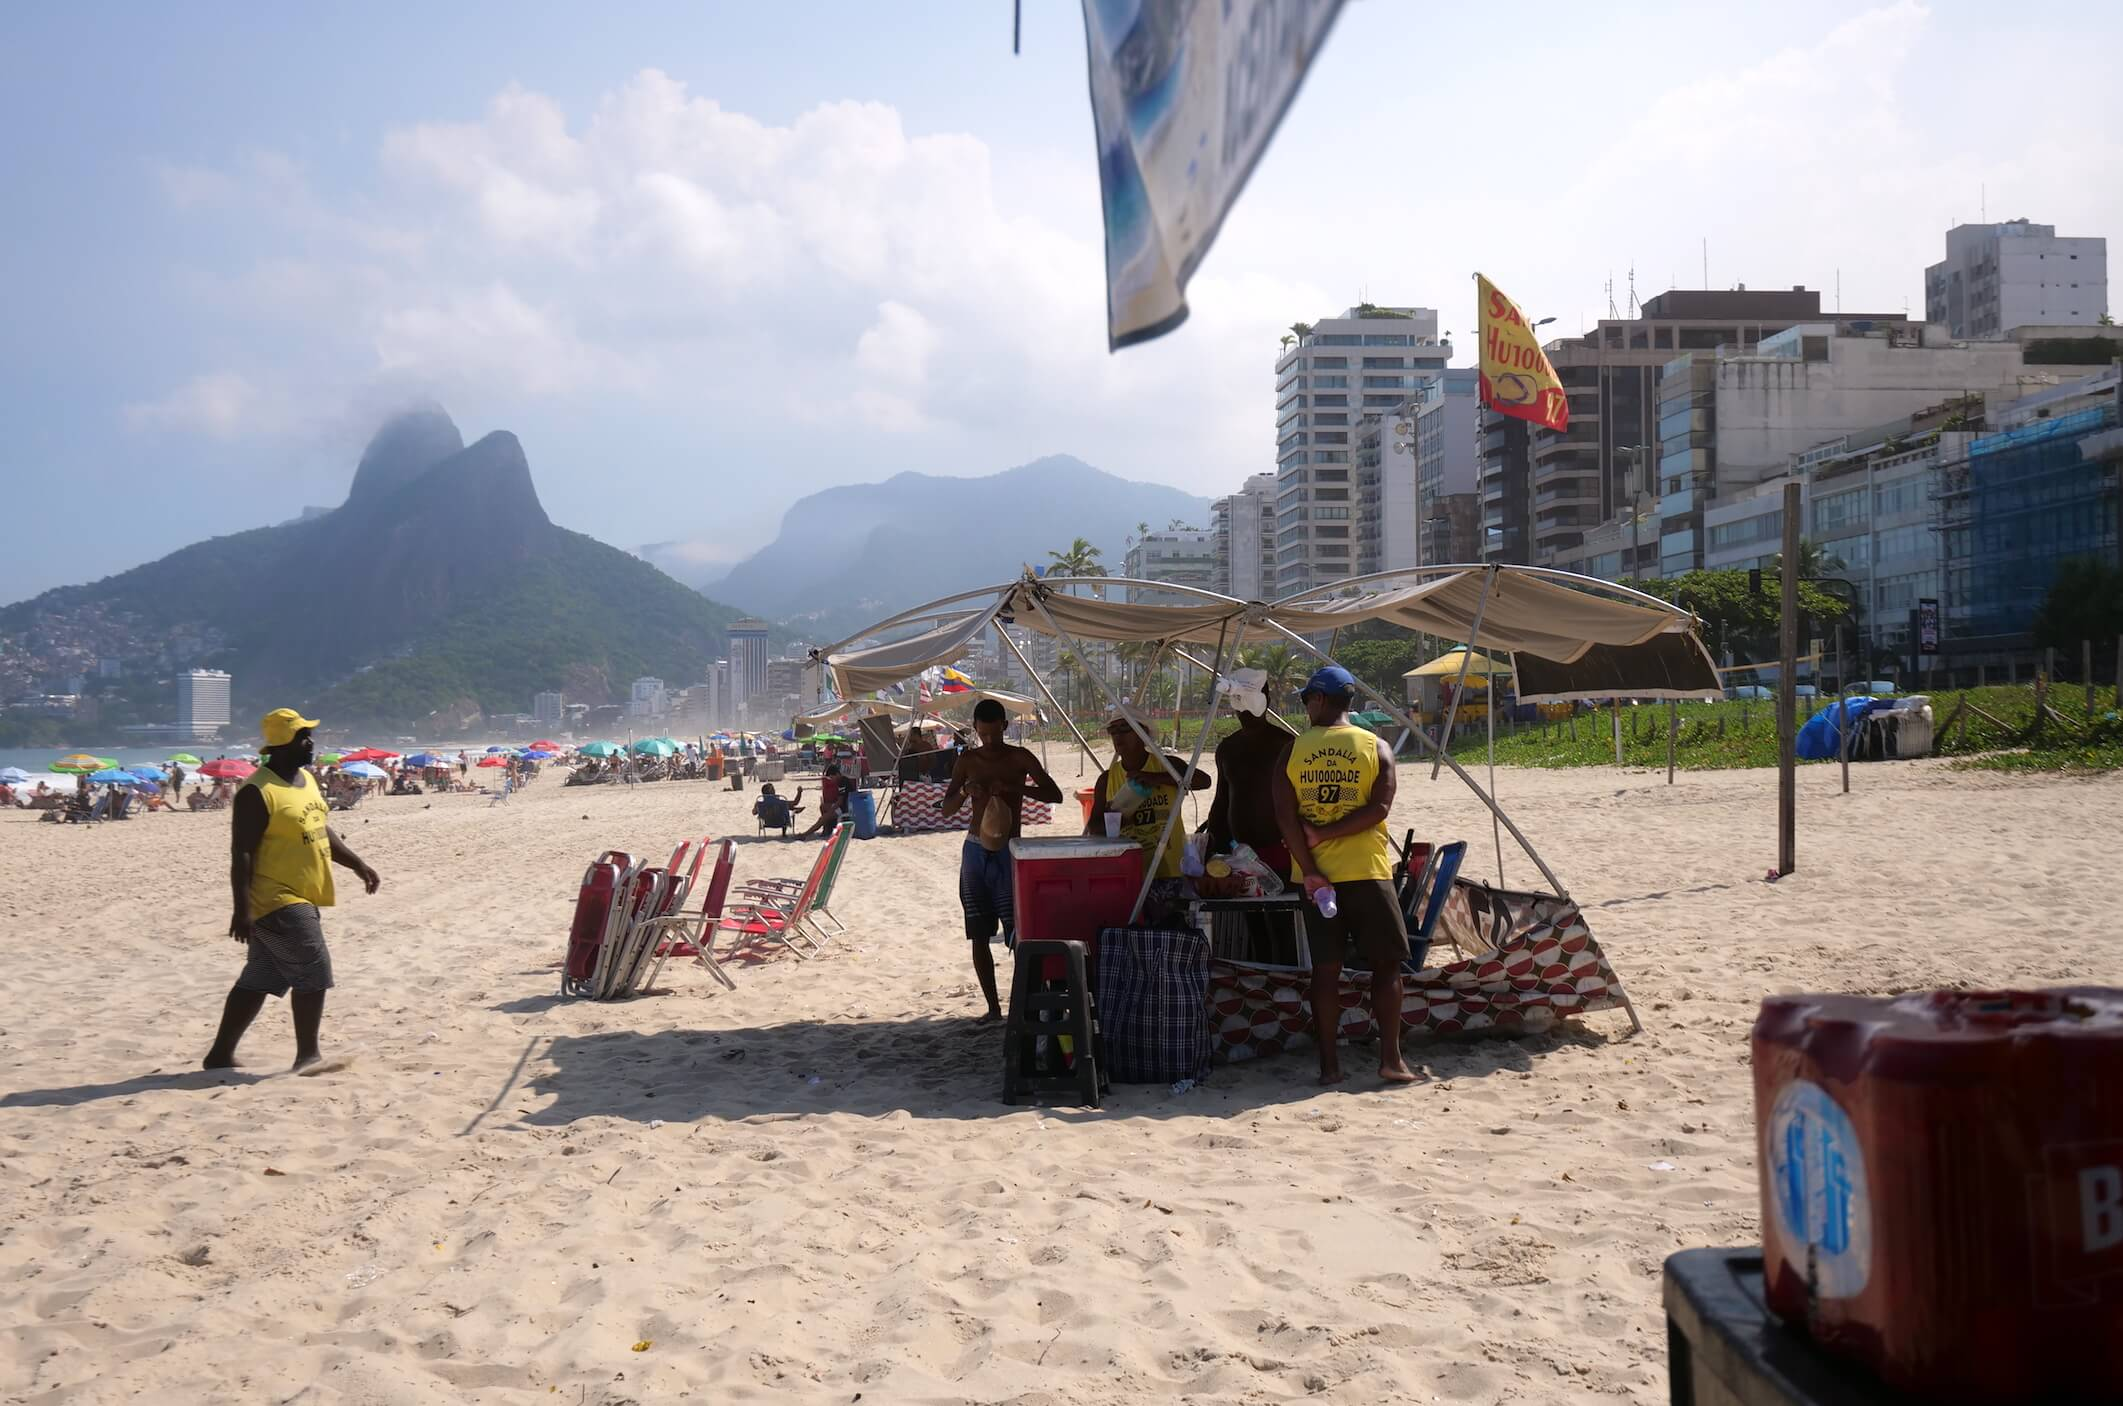 Refreshing drinks on the beach, it doesn't get more classic in Rio than a Caipirinha on Copacabana beach